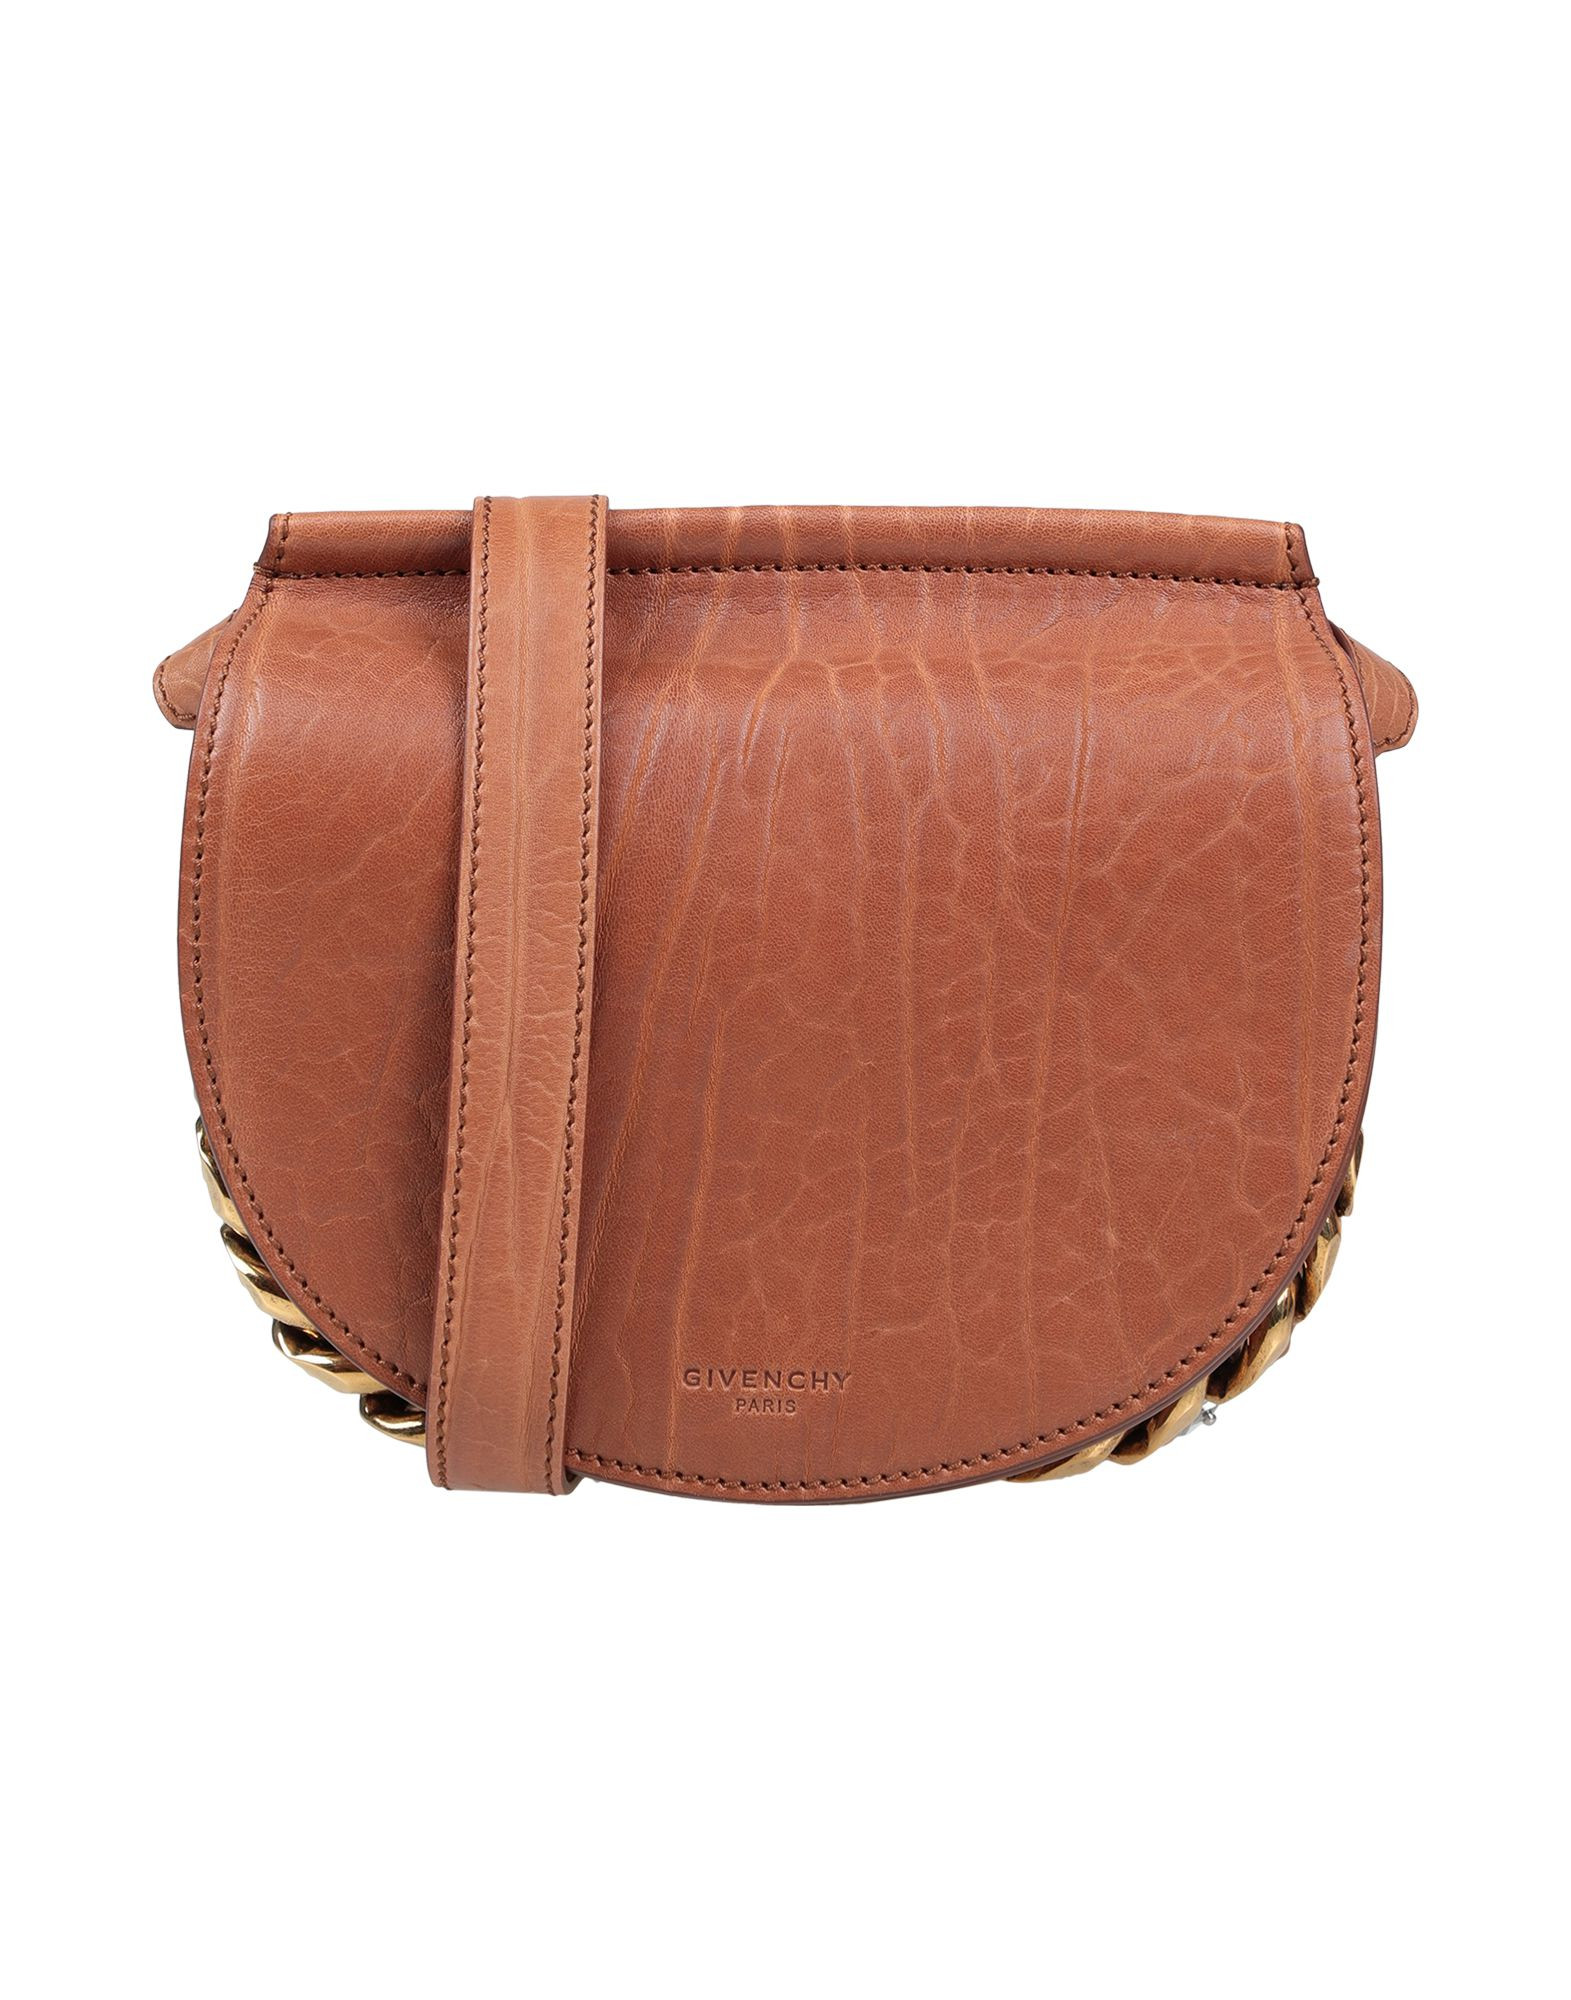 85f77bcb2b Givenchy Cross-Body Bags - Women Givenchy Cross-Body Bags online on ...